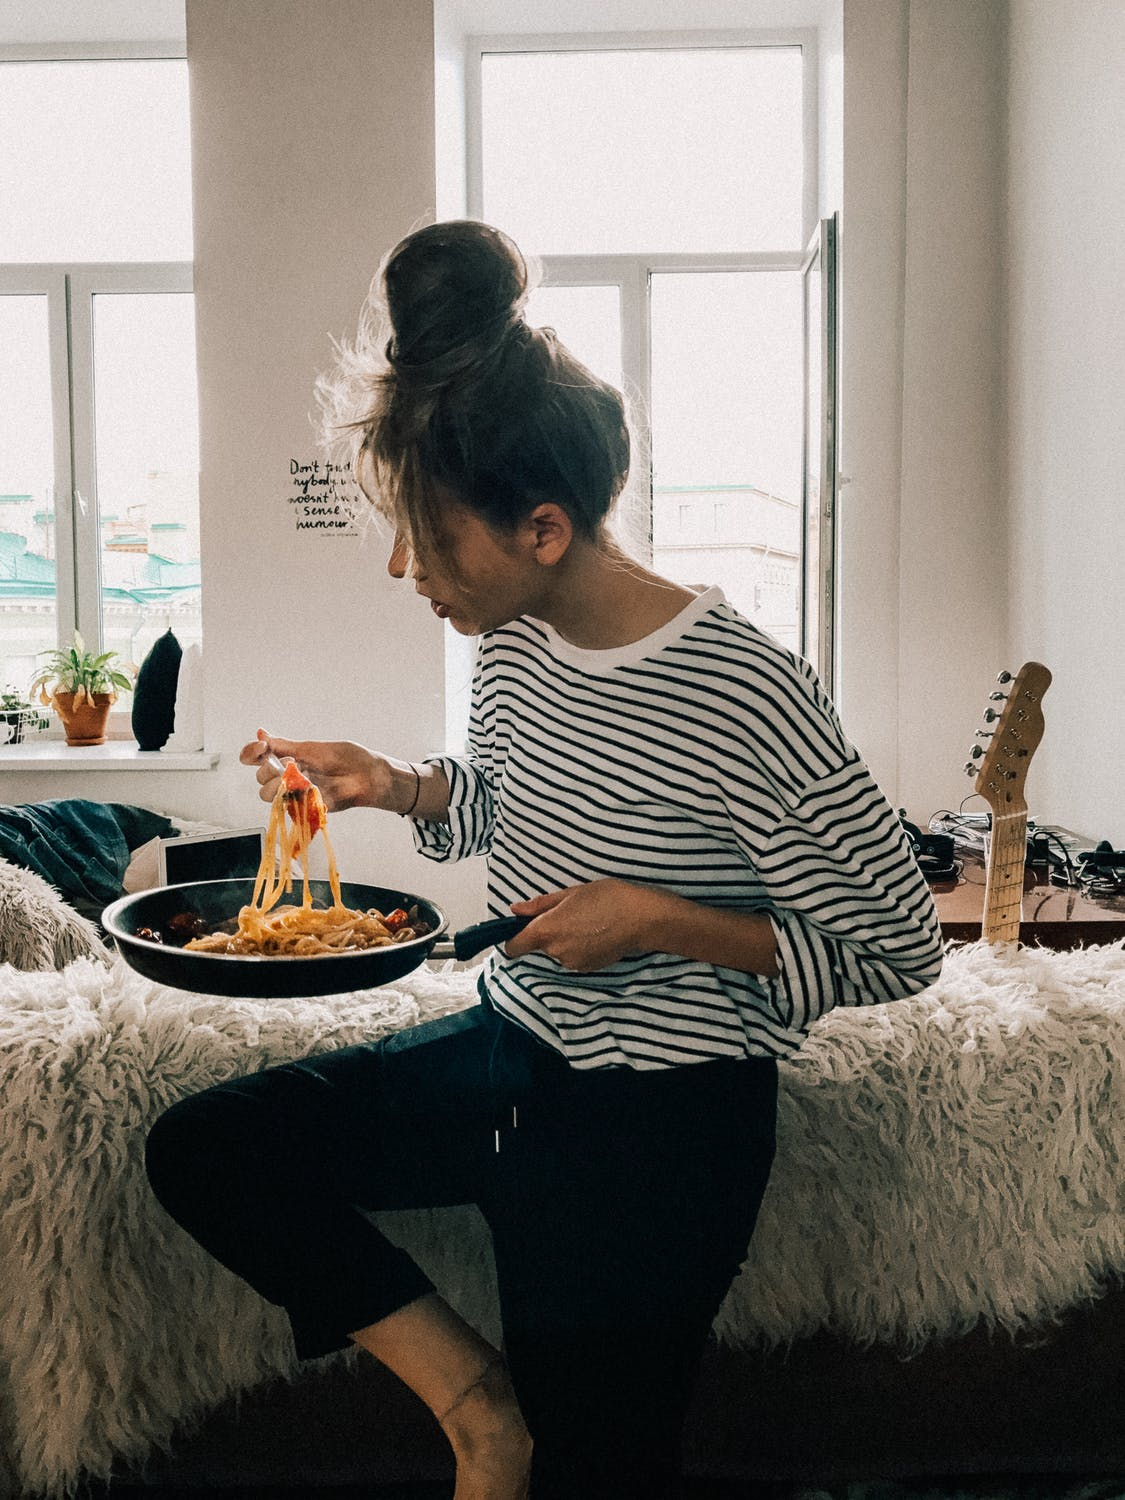 Girl in her college dorm casually eating pasta out of a pan